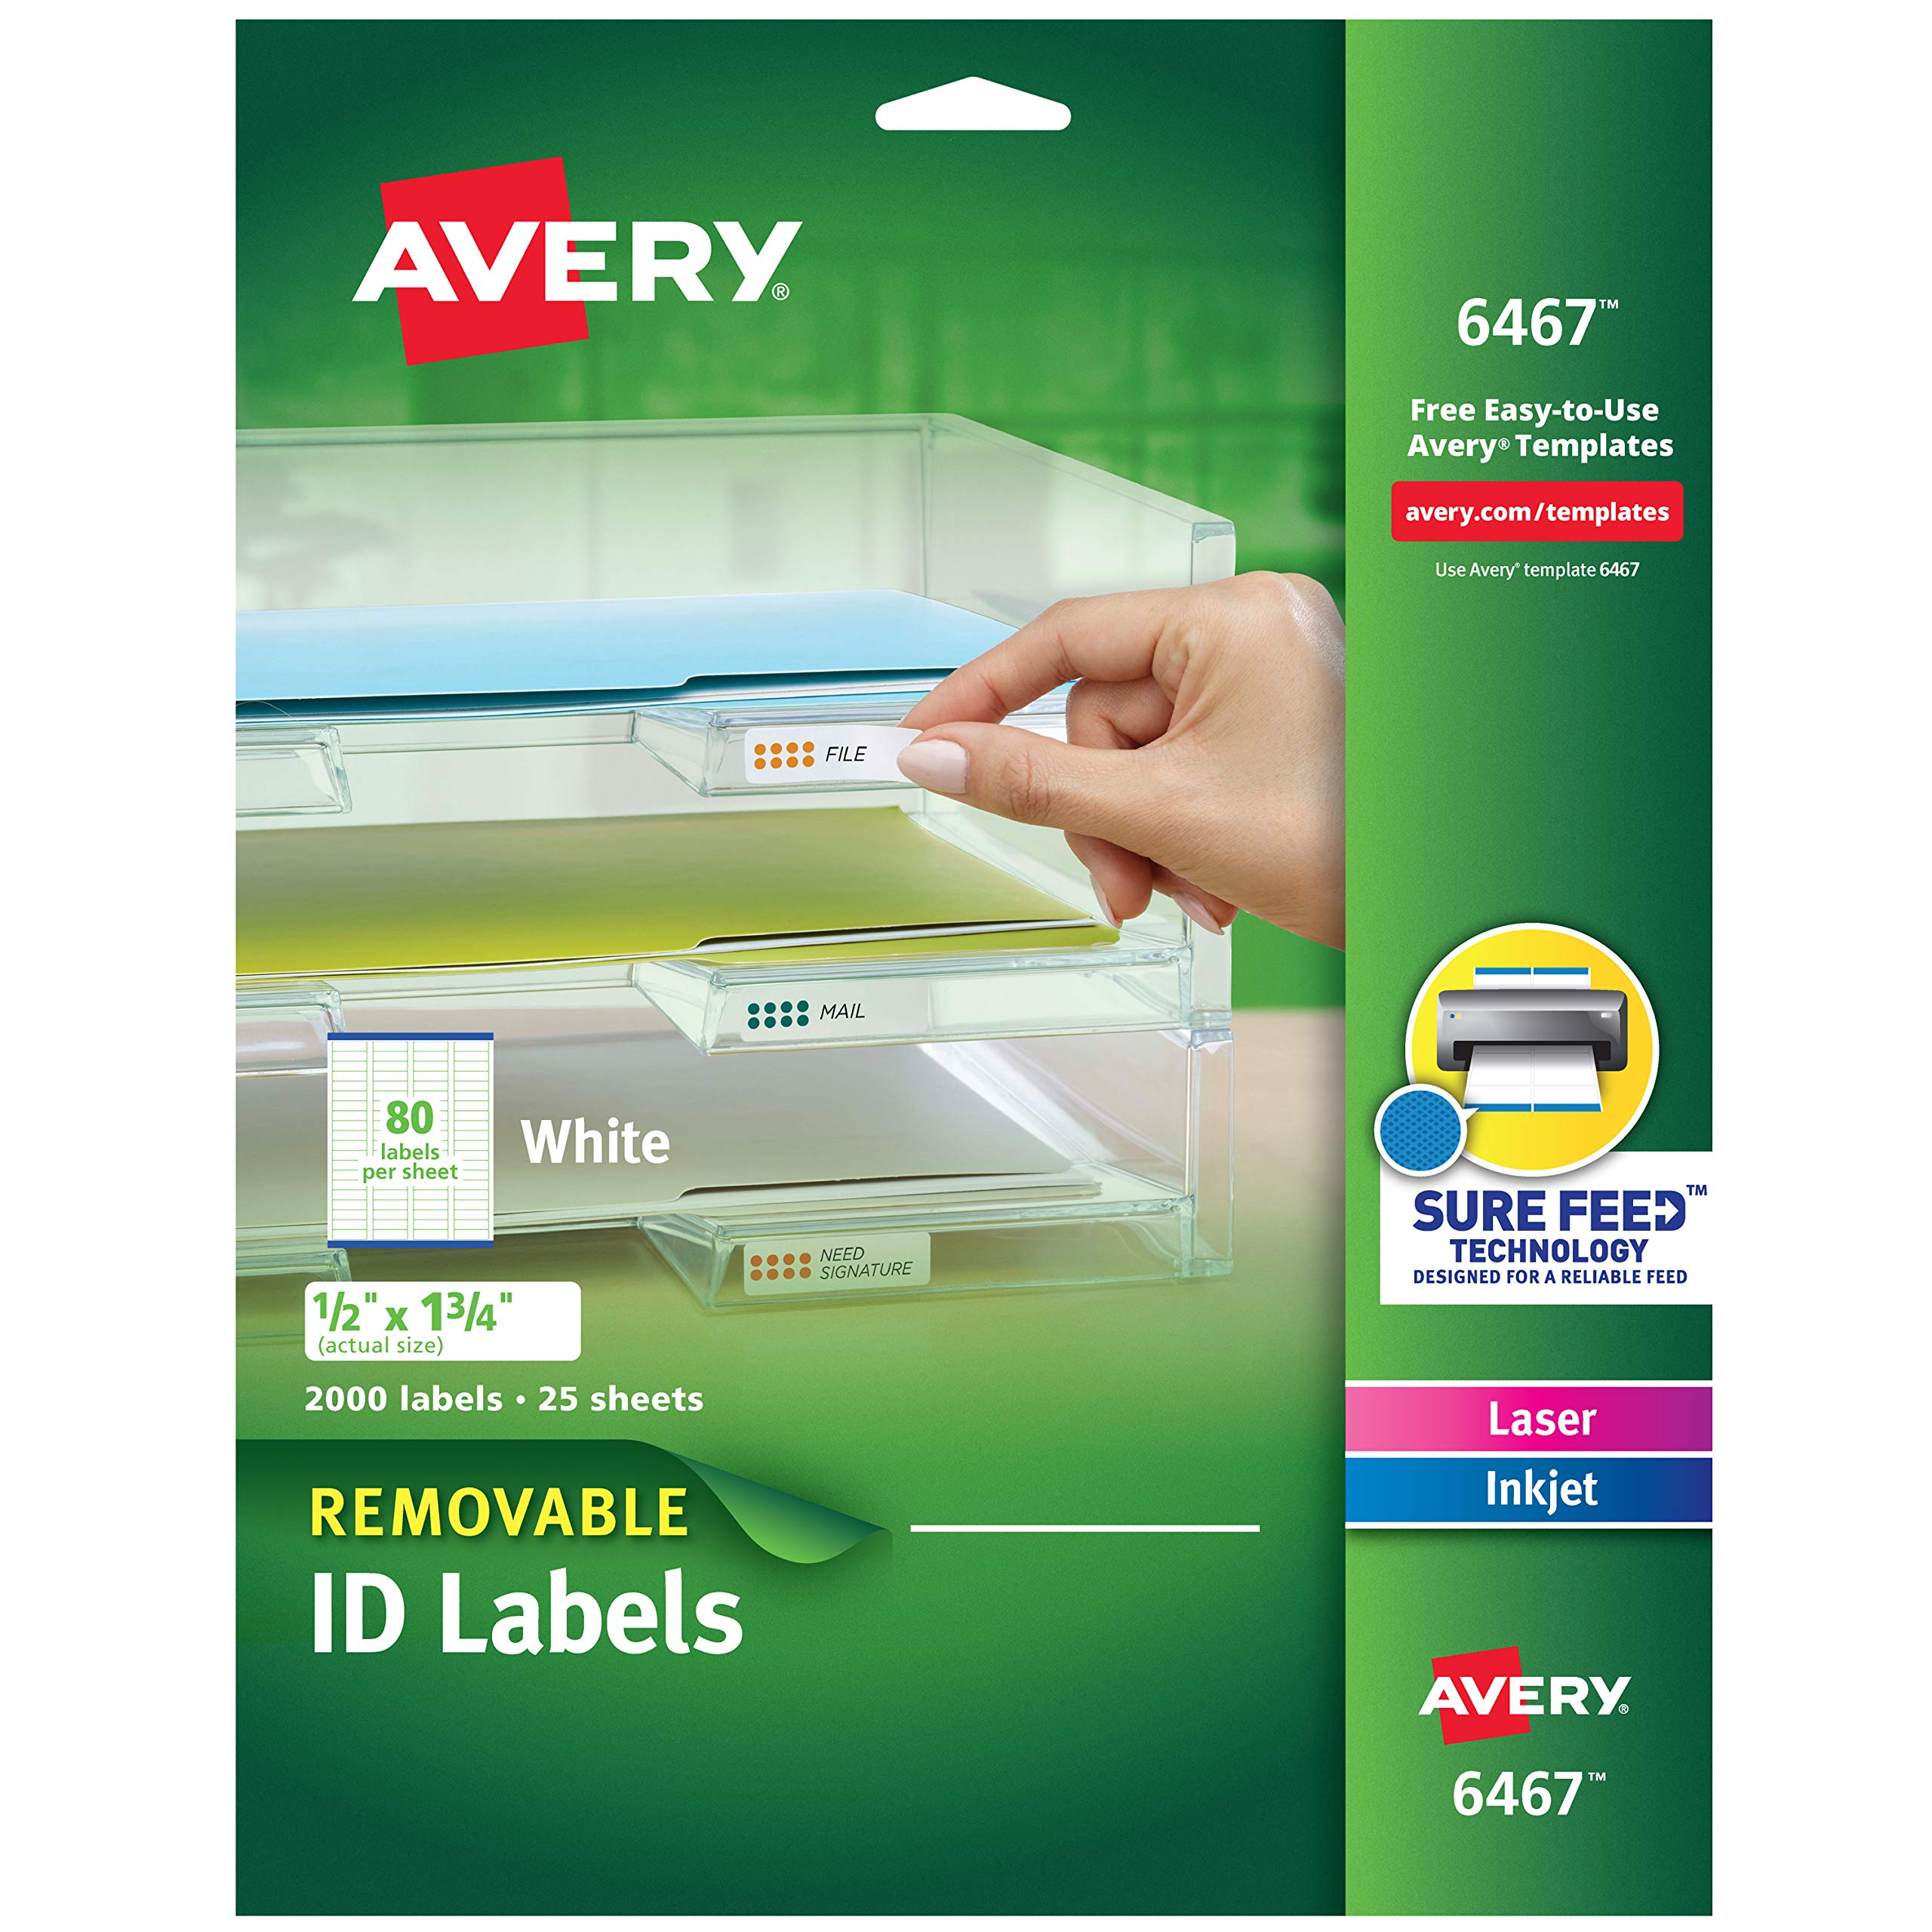 Avery Self-Adhesive White Removable Laser Id Labels, 1/2'' x 1-3/4, 2000 per Pack (6467) by AVERY